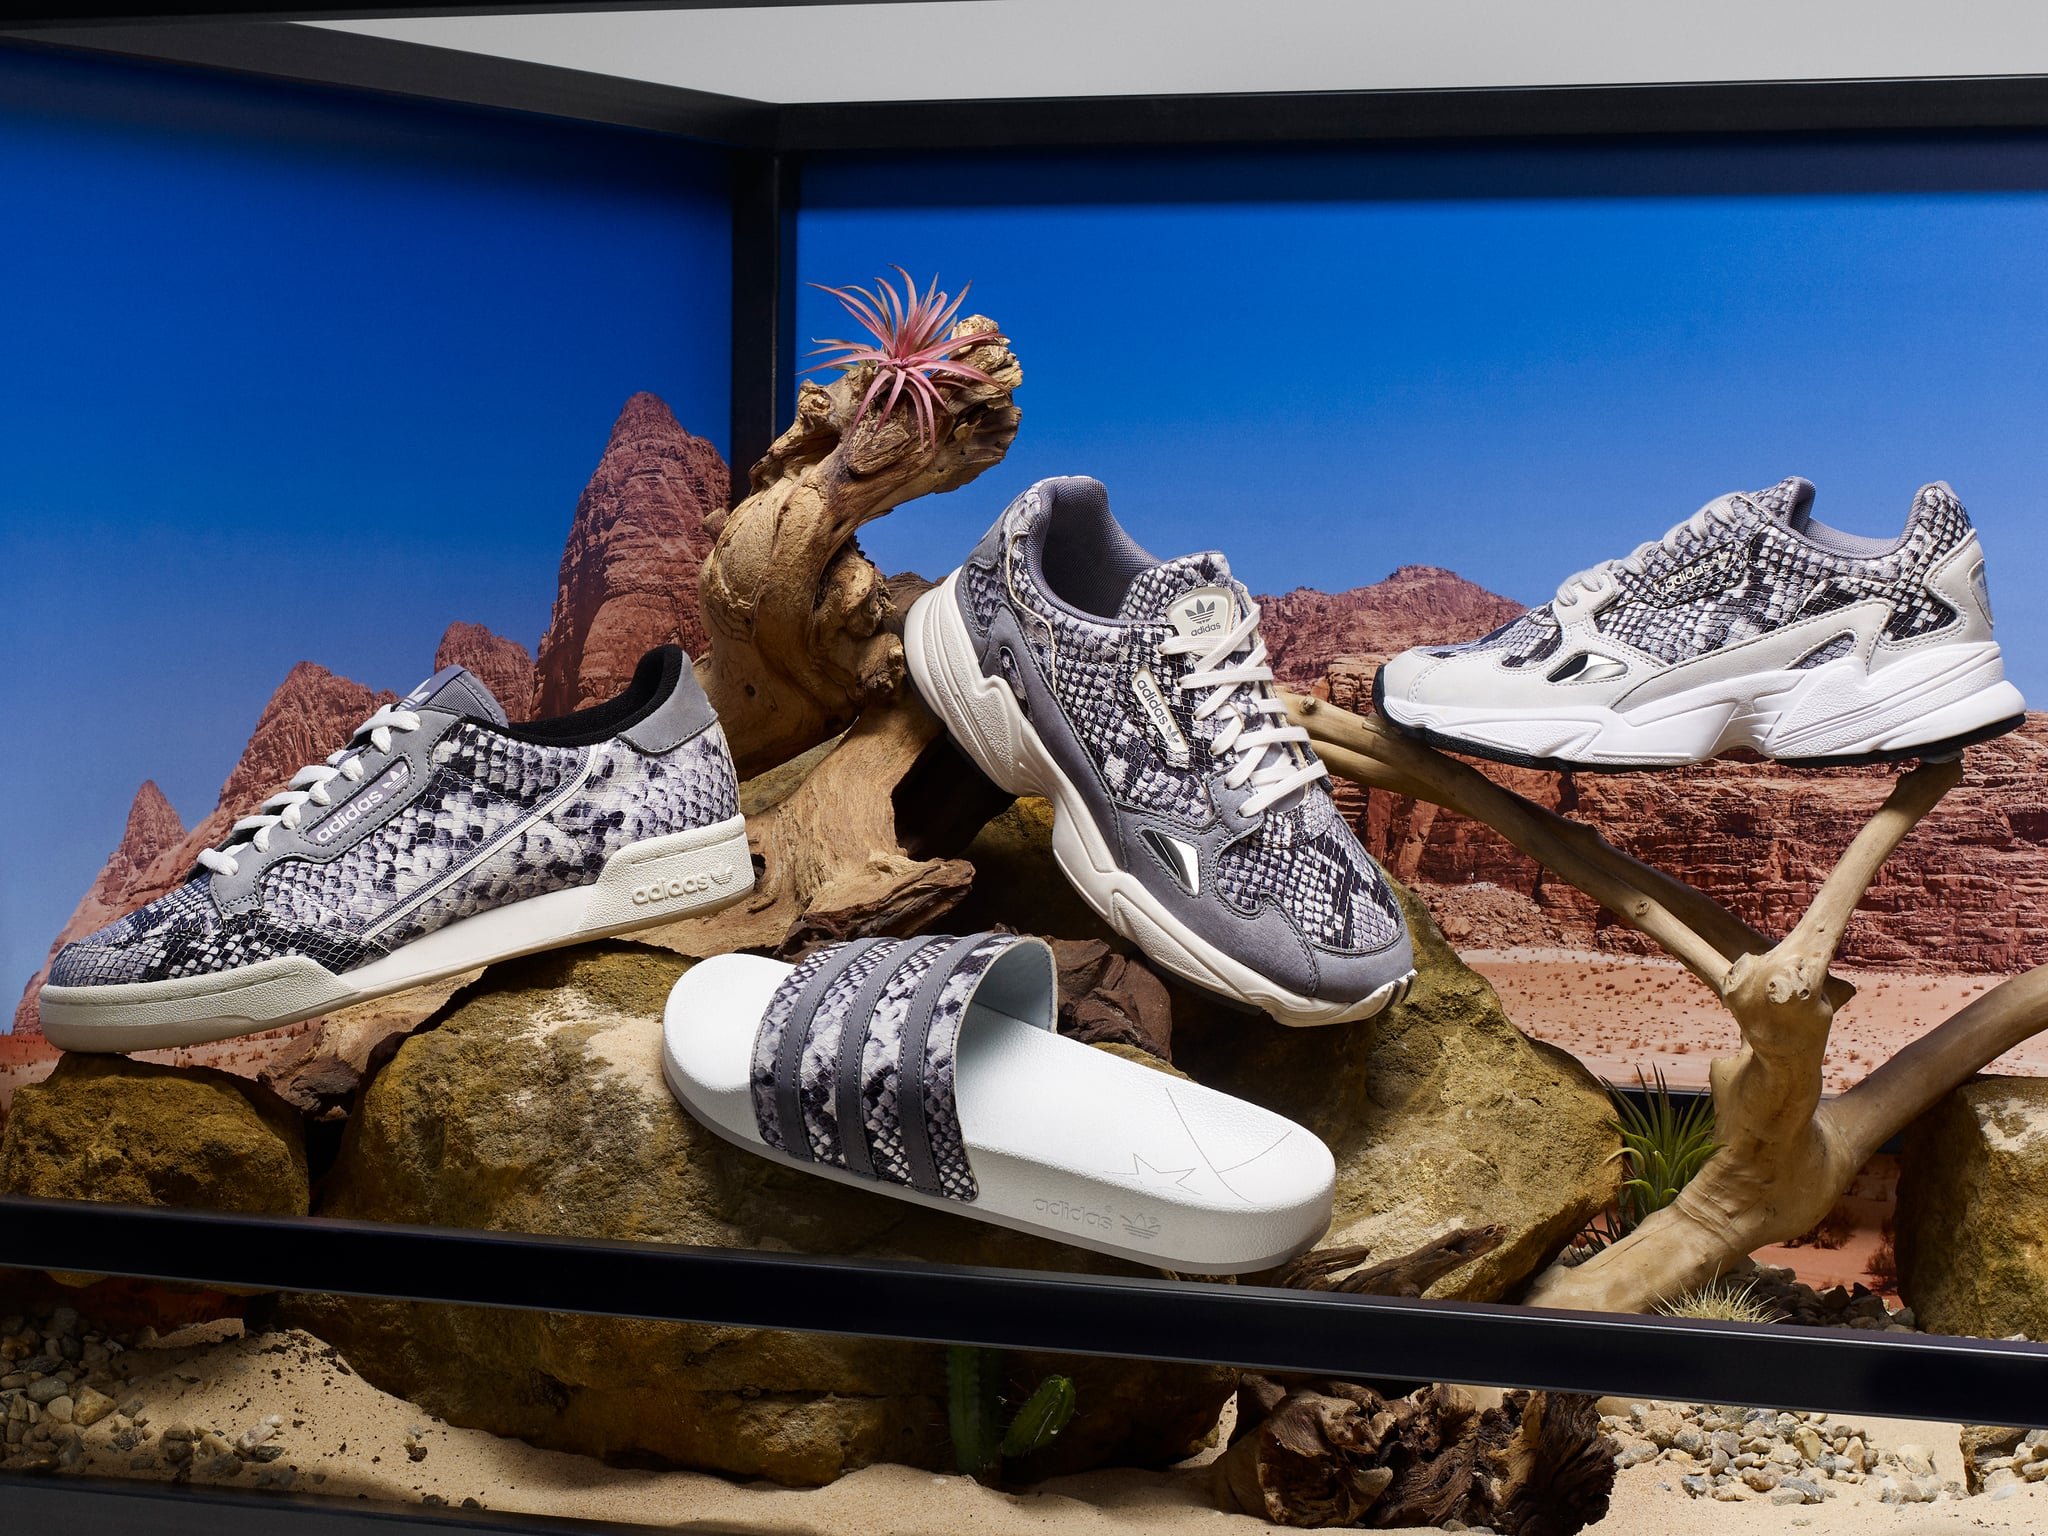 Adidas Snakeskin Sneakers Collection 2019 | POPSUGAR Fashion